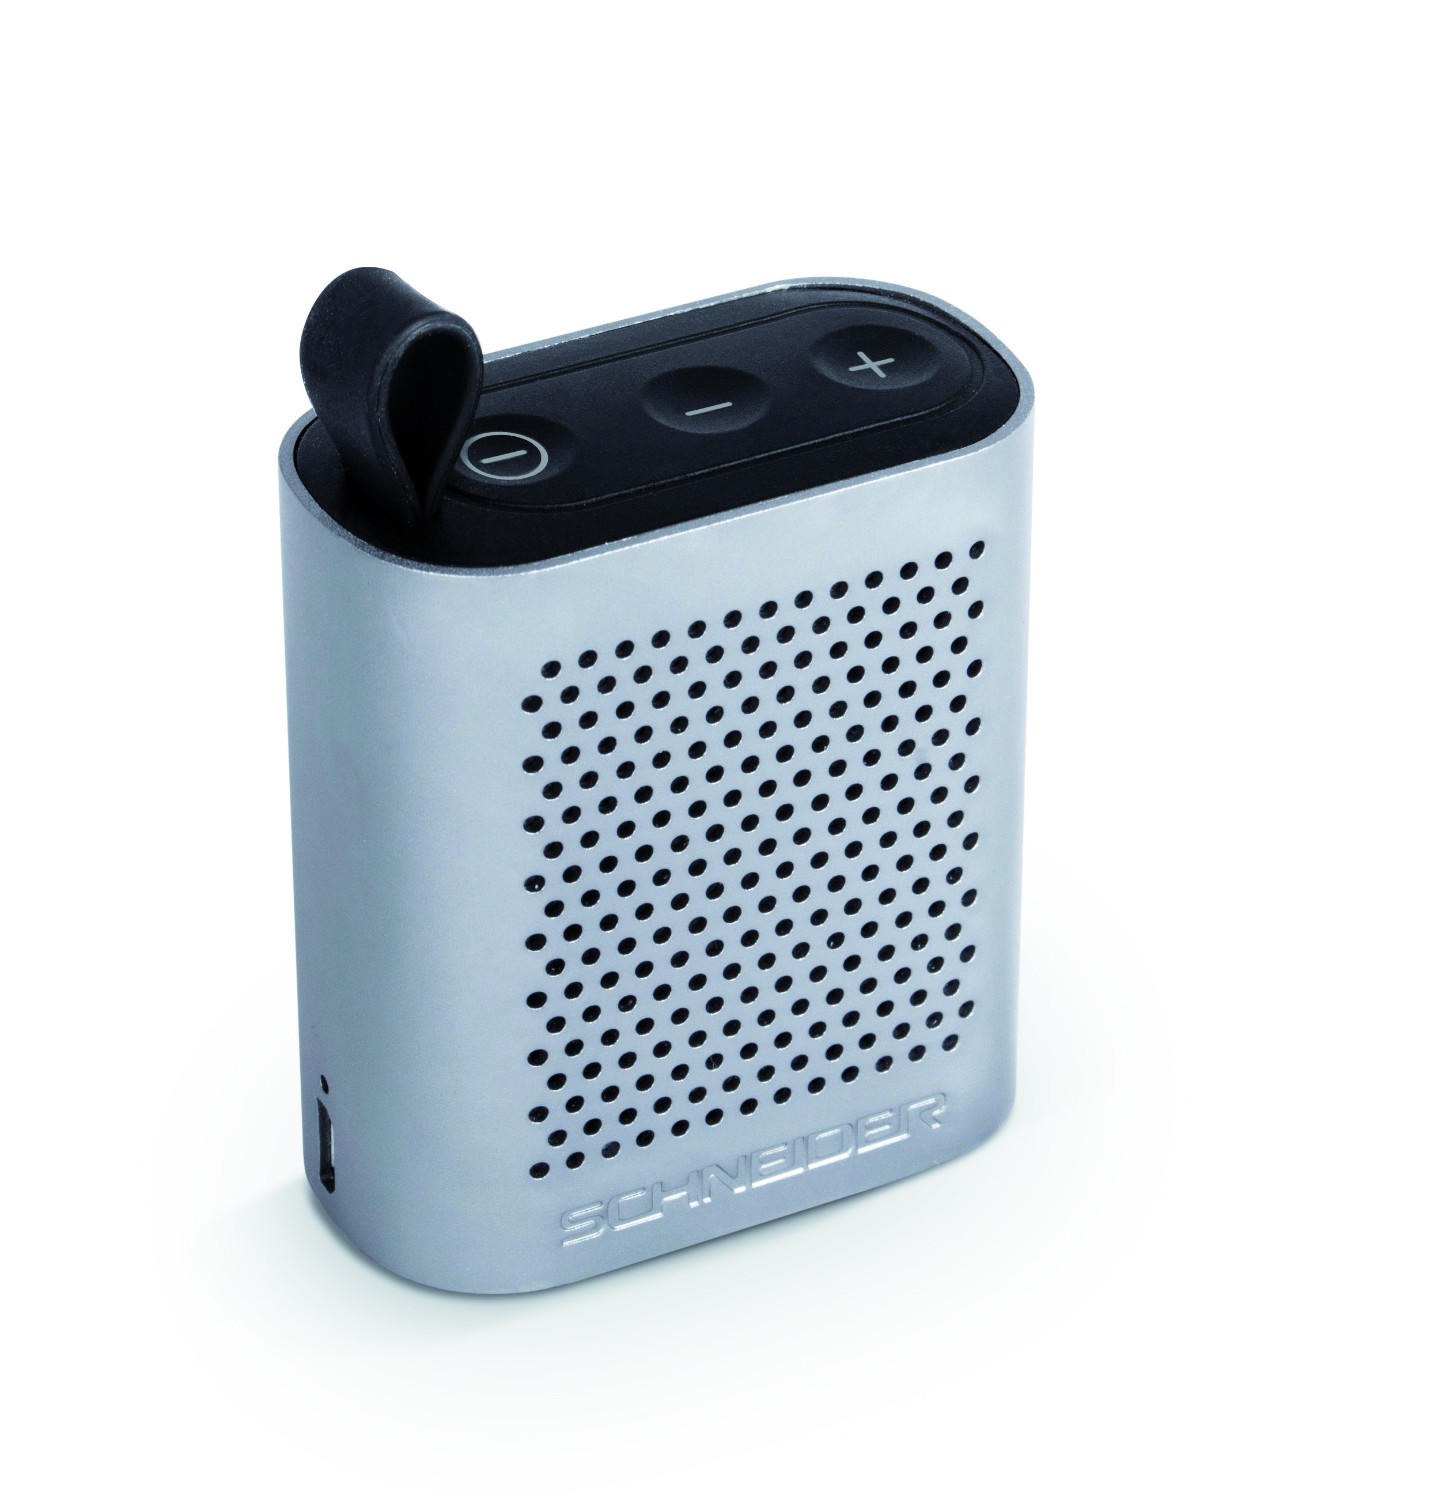 Bluetooth speaker Groove Micro grey - Schneider